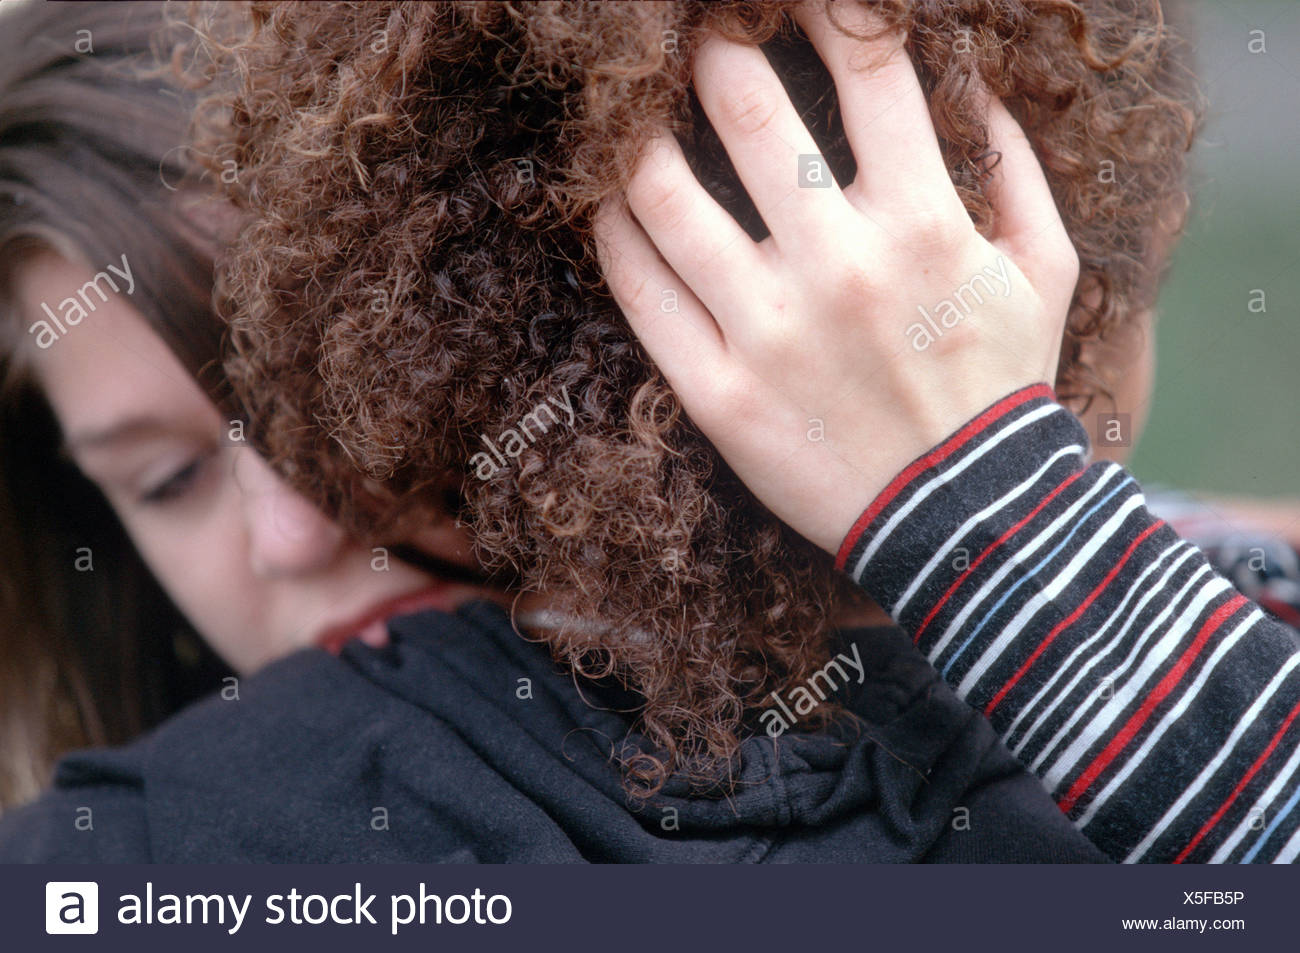 Desperate young women in love with ethnic boy SerieCVS117005 - Stock Image